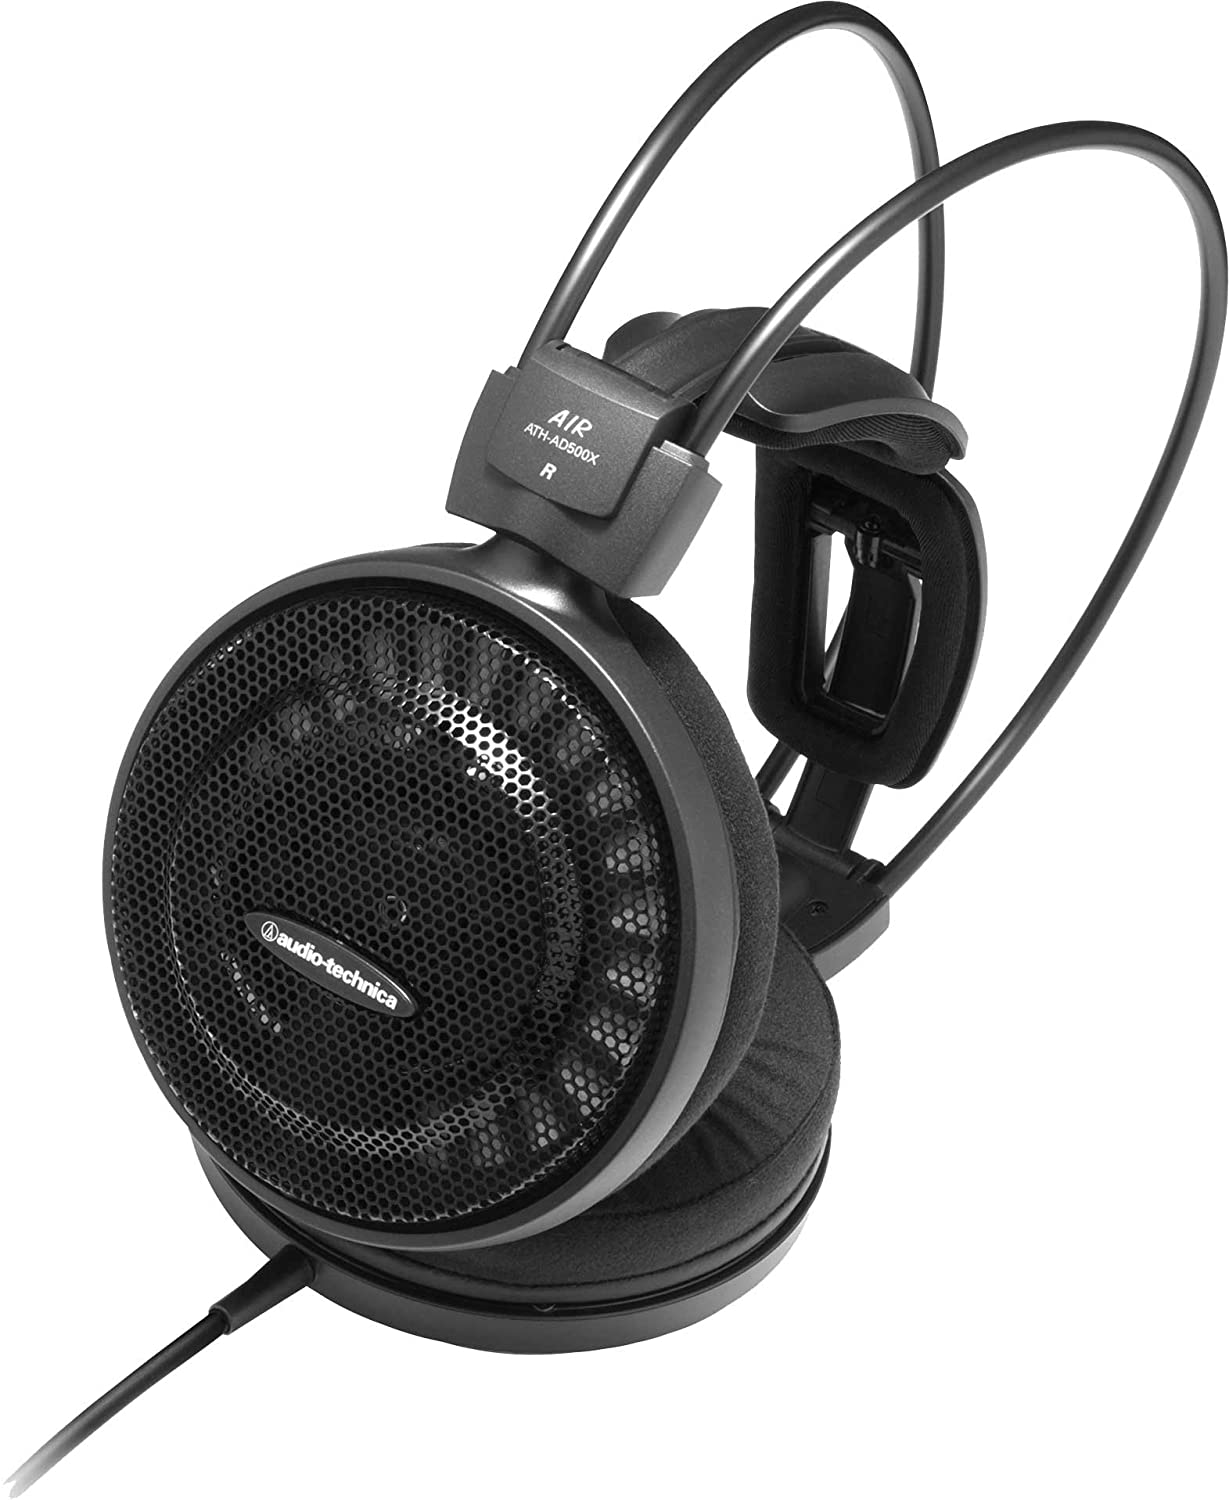 Denon Over-Ear Headphones, Acoustic Optimizer System, 42mm Diaphragms With Neodymium Magnet Structure, Contoured... Sale